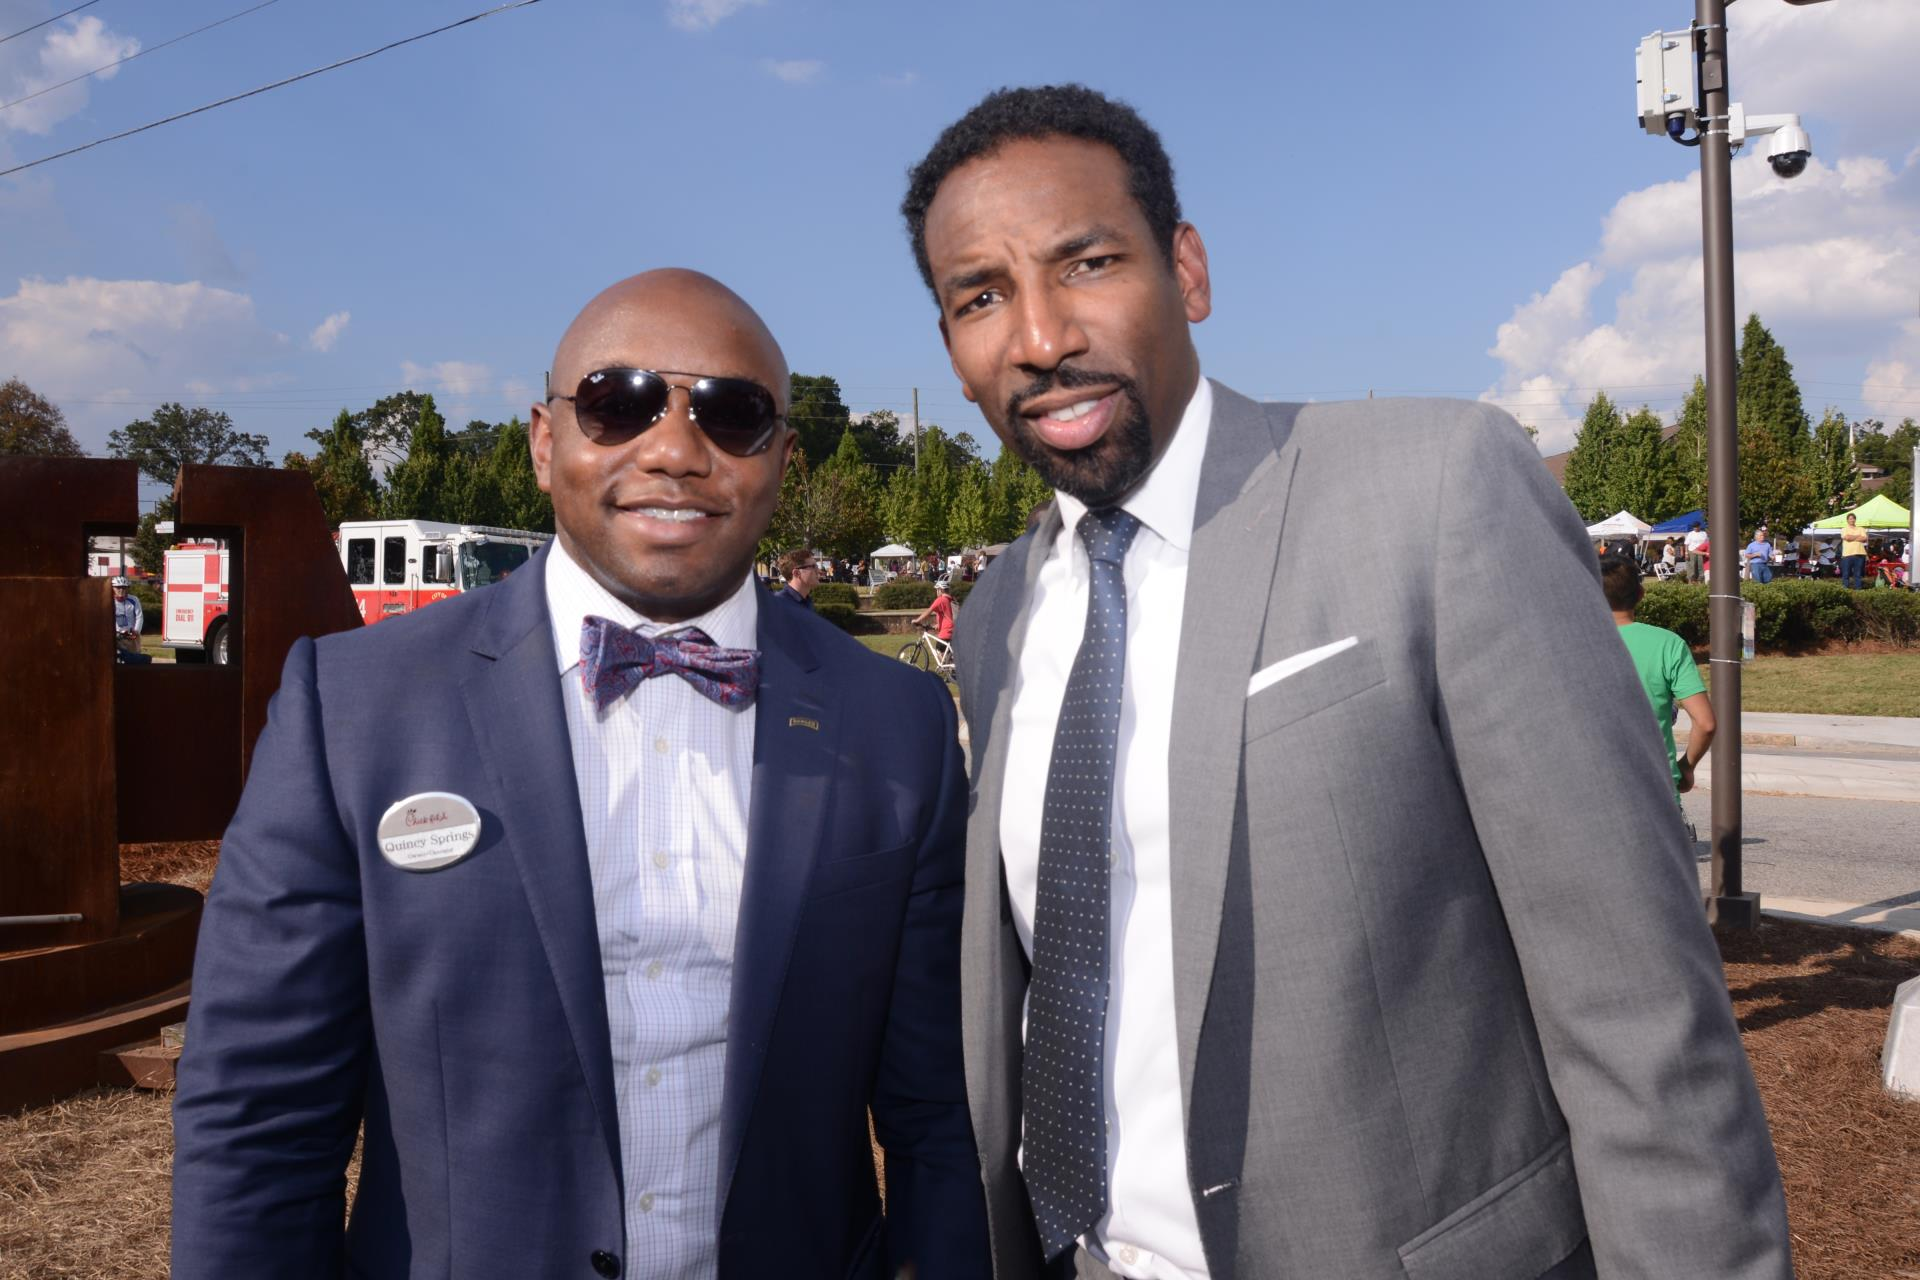 Dickens with Quincy Springs of Chic fil A at Westide Beltline opening